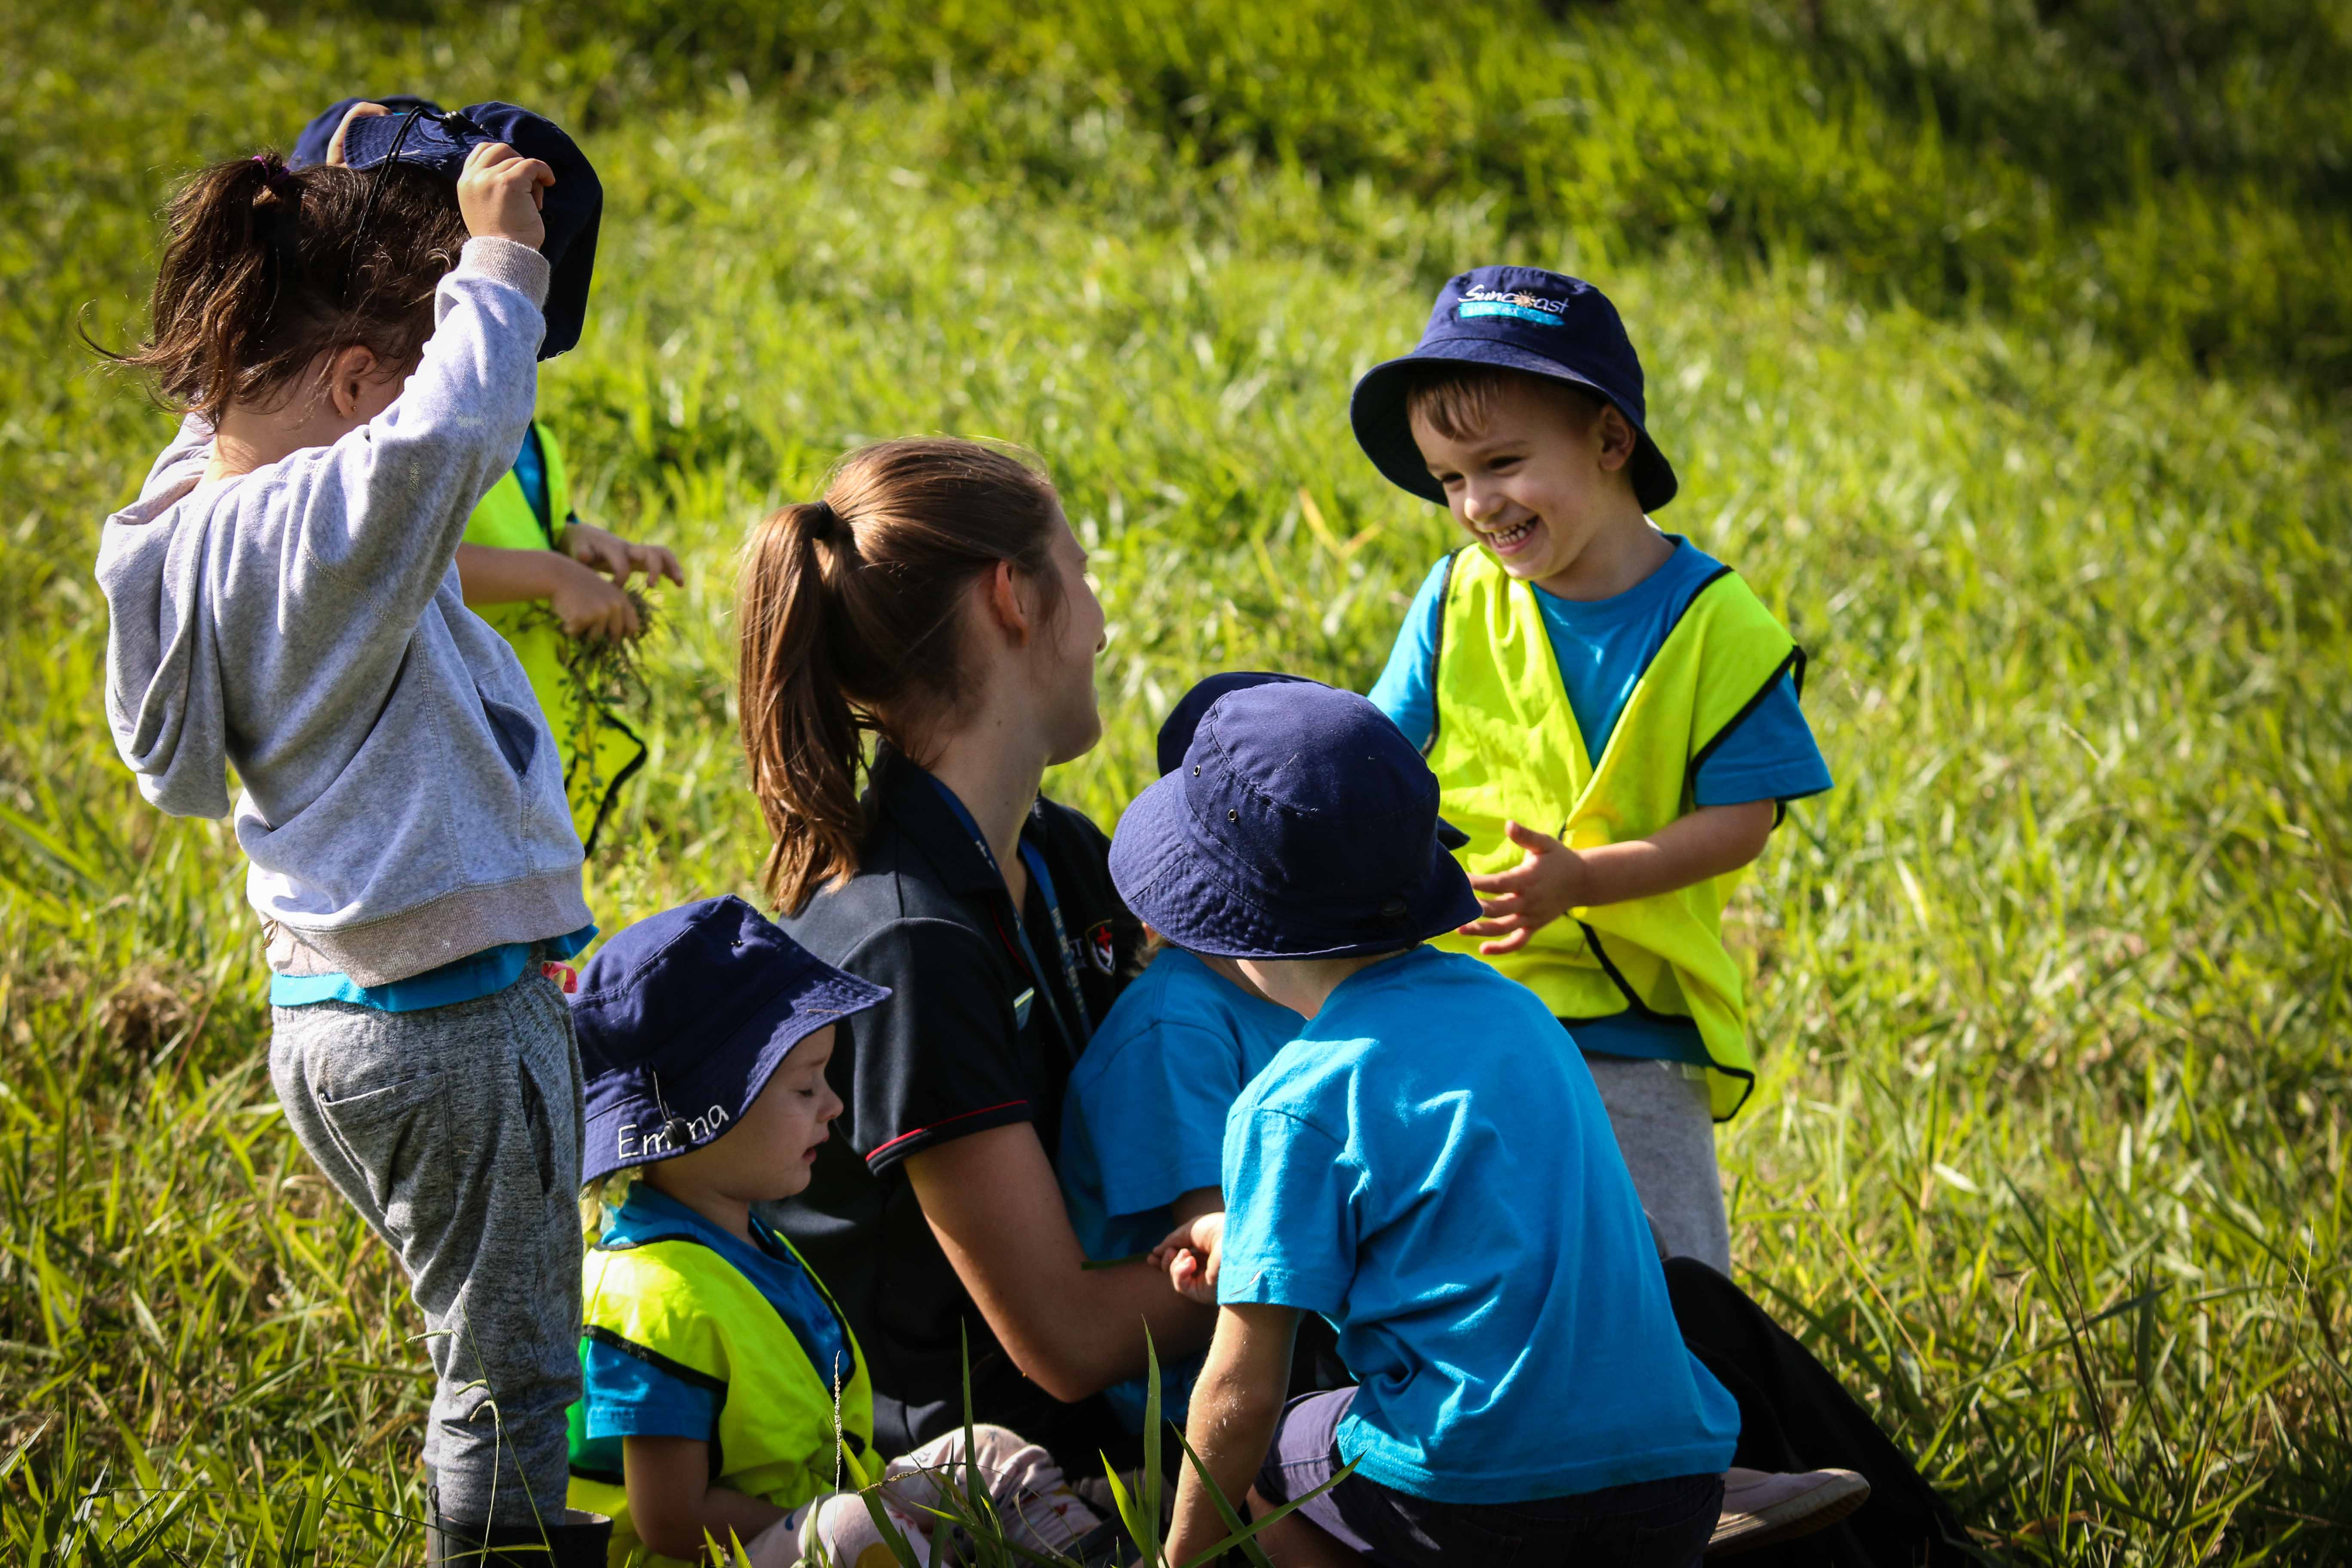 Childcare educator with smiling child in field during Bush Kindy at Suncoasst Little Learners